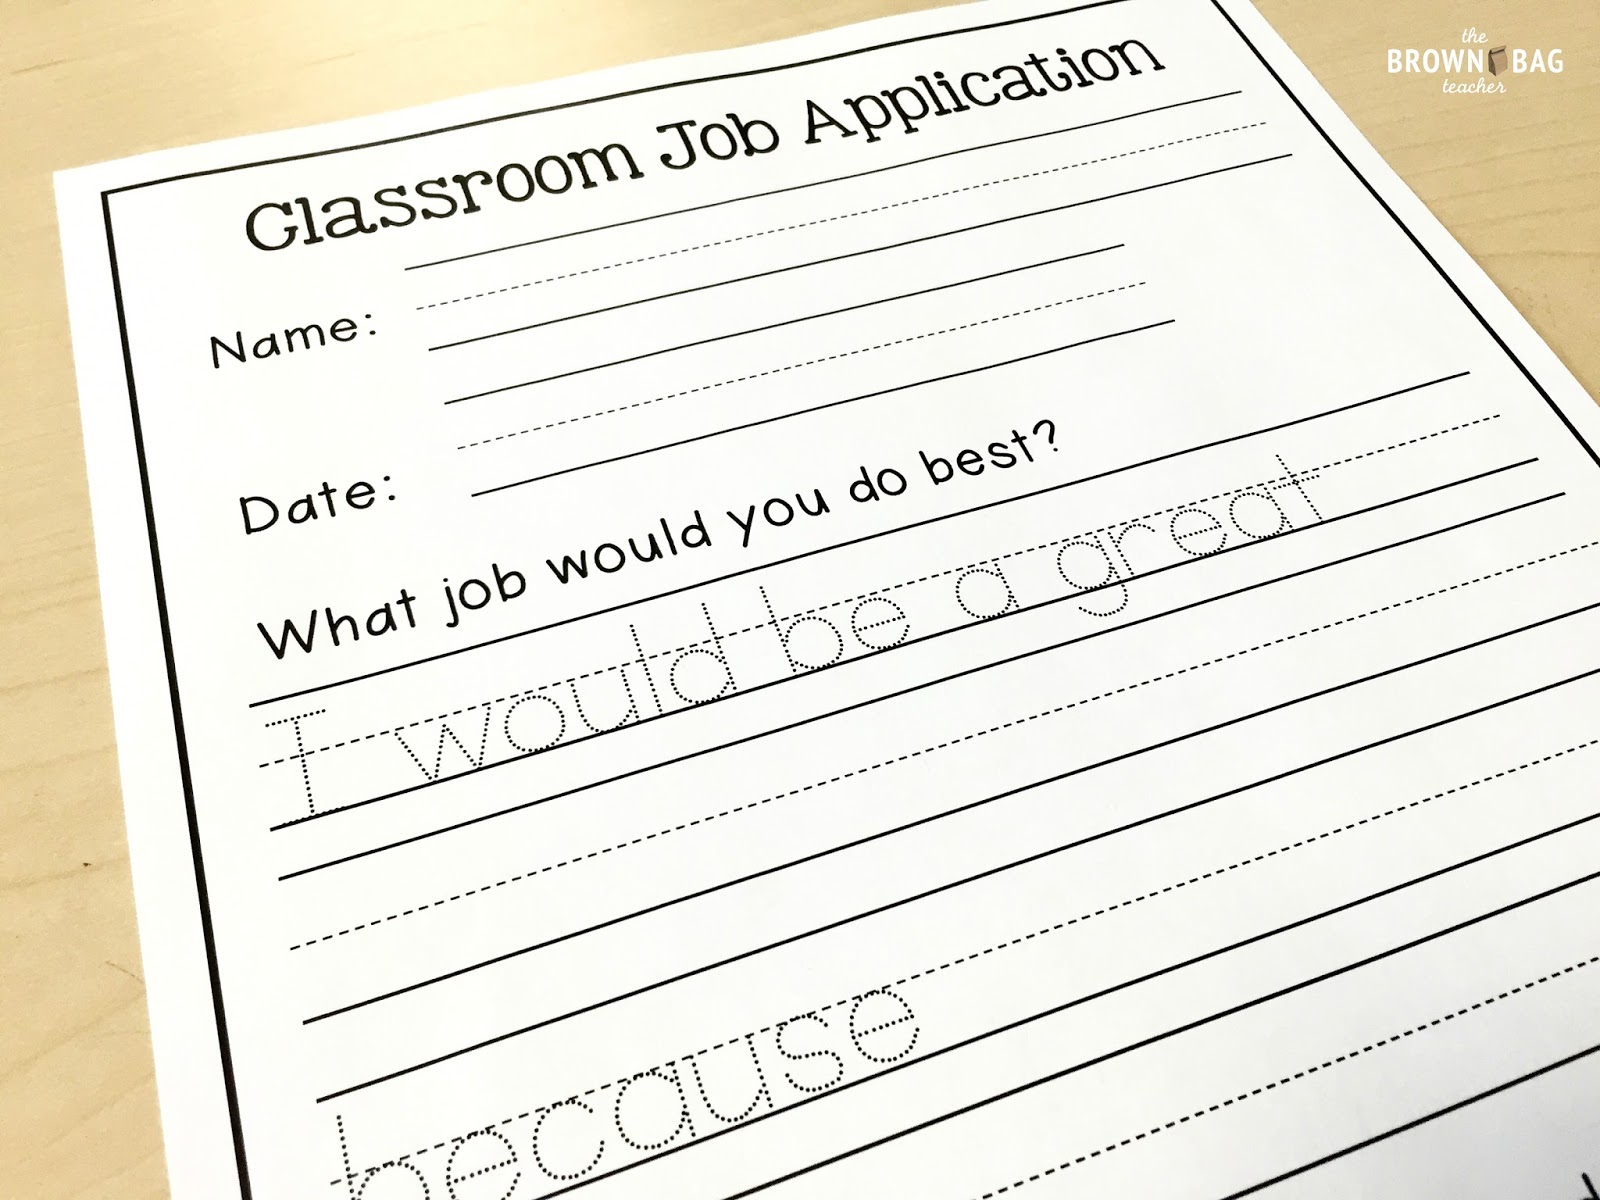 classroom jobs in st grade the brown bag teacher i teach at a leader in me school so all students are expected to fill a leadership job in the classroom below is a look at the job descriptions i send